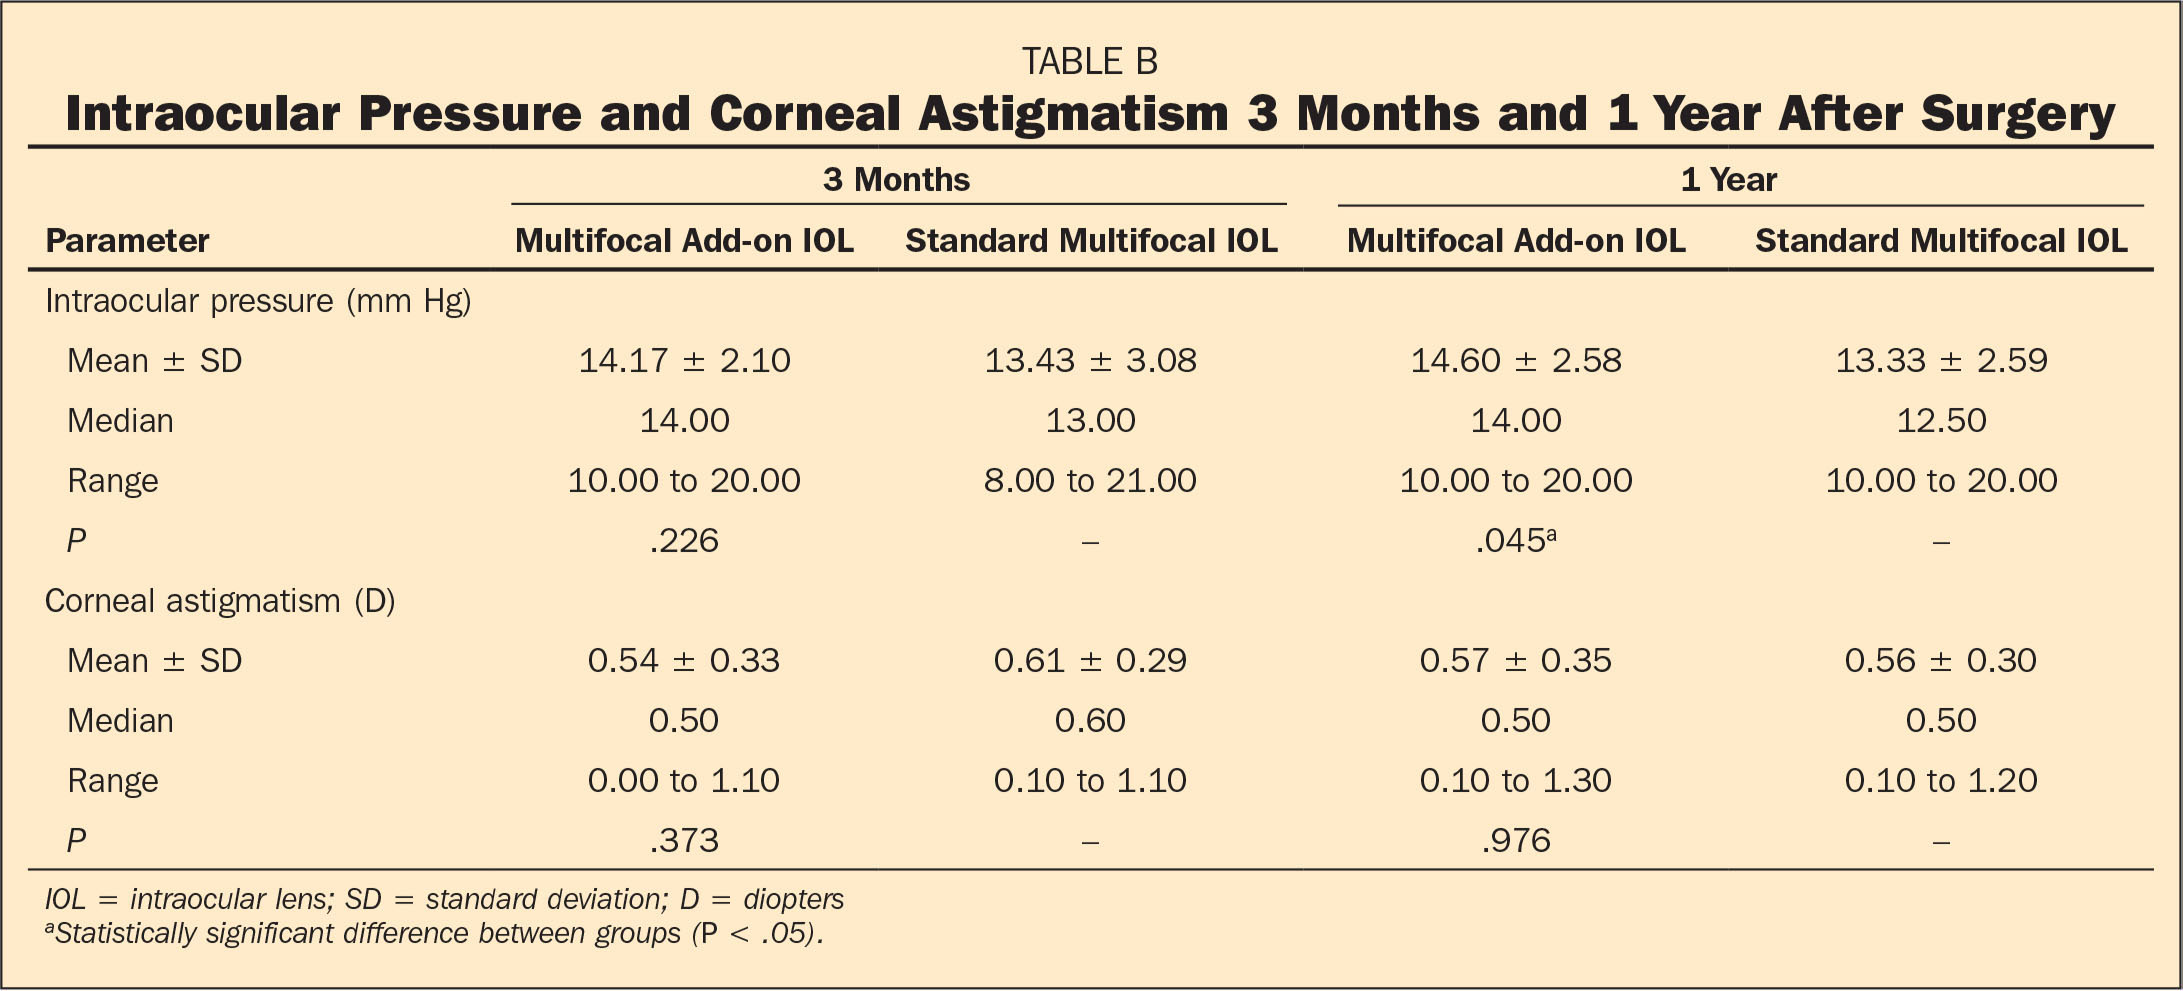 Intraocular Pressure and Corneal Astigmatism 3 Months and 1 Year After Surgery